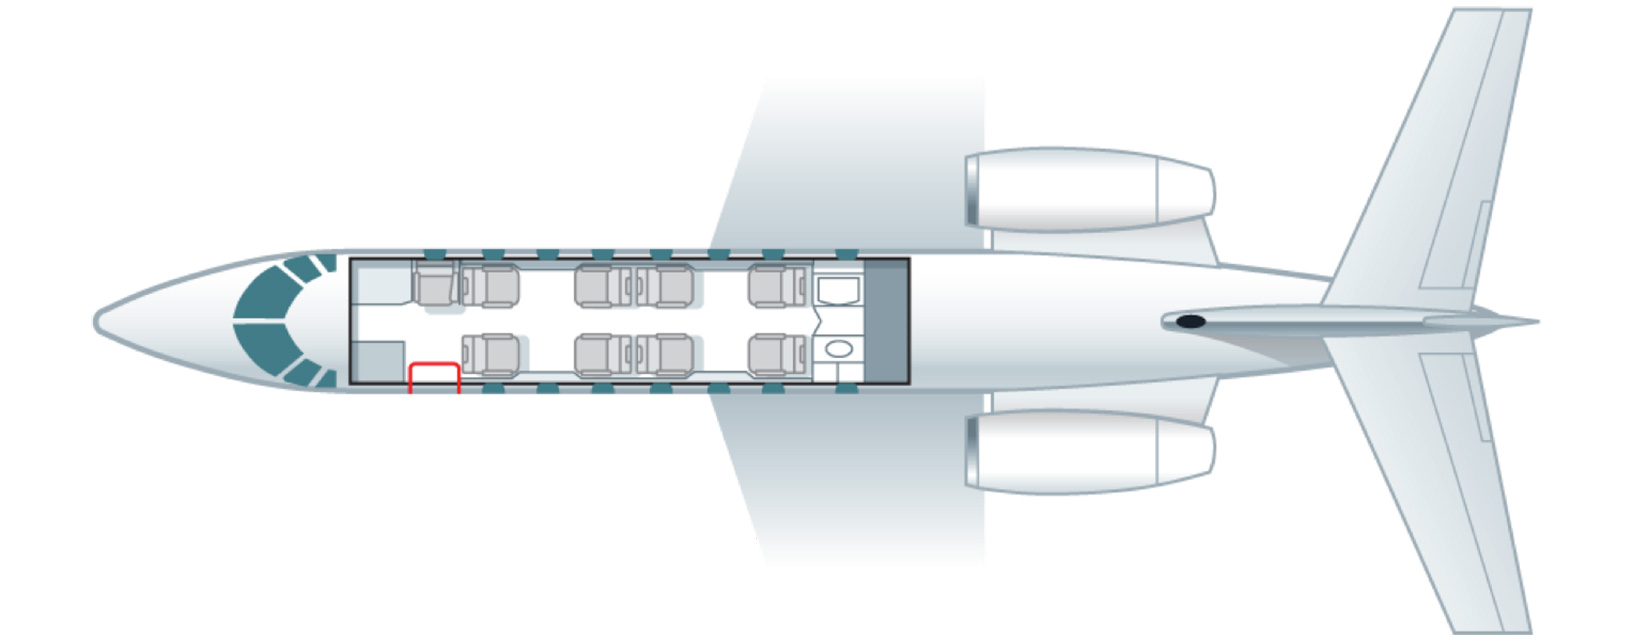 Floor plan of Cessna Citation Sovereign